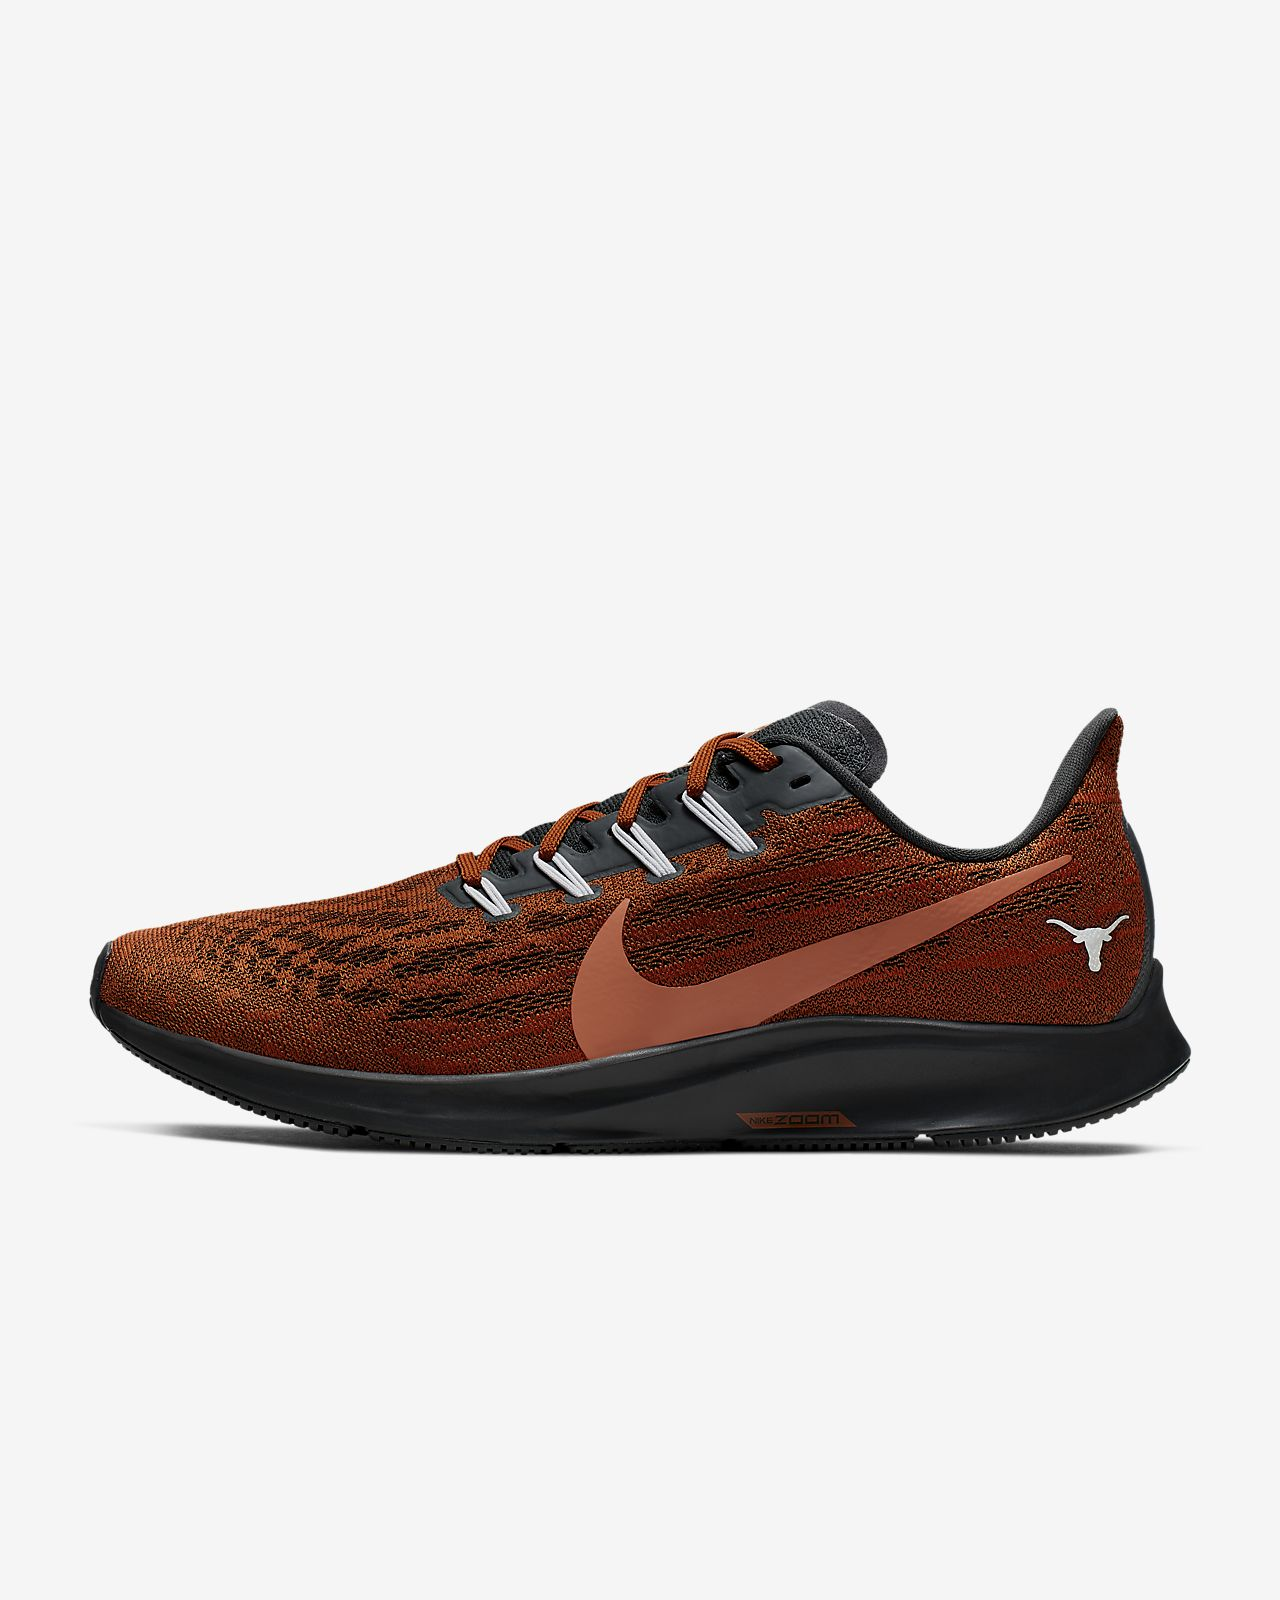 Nike Air Zoom Pegasus 36 (Texas) Men's Running Shoe